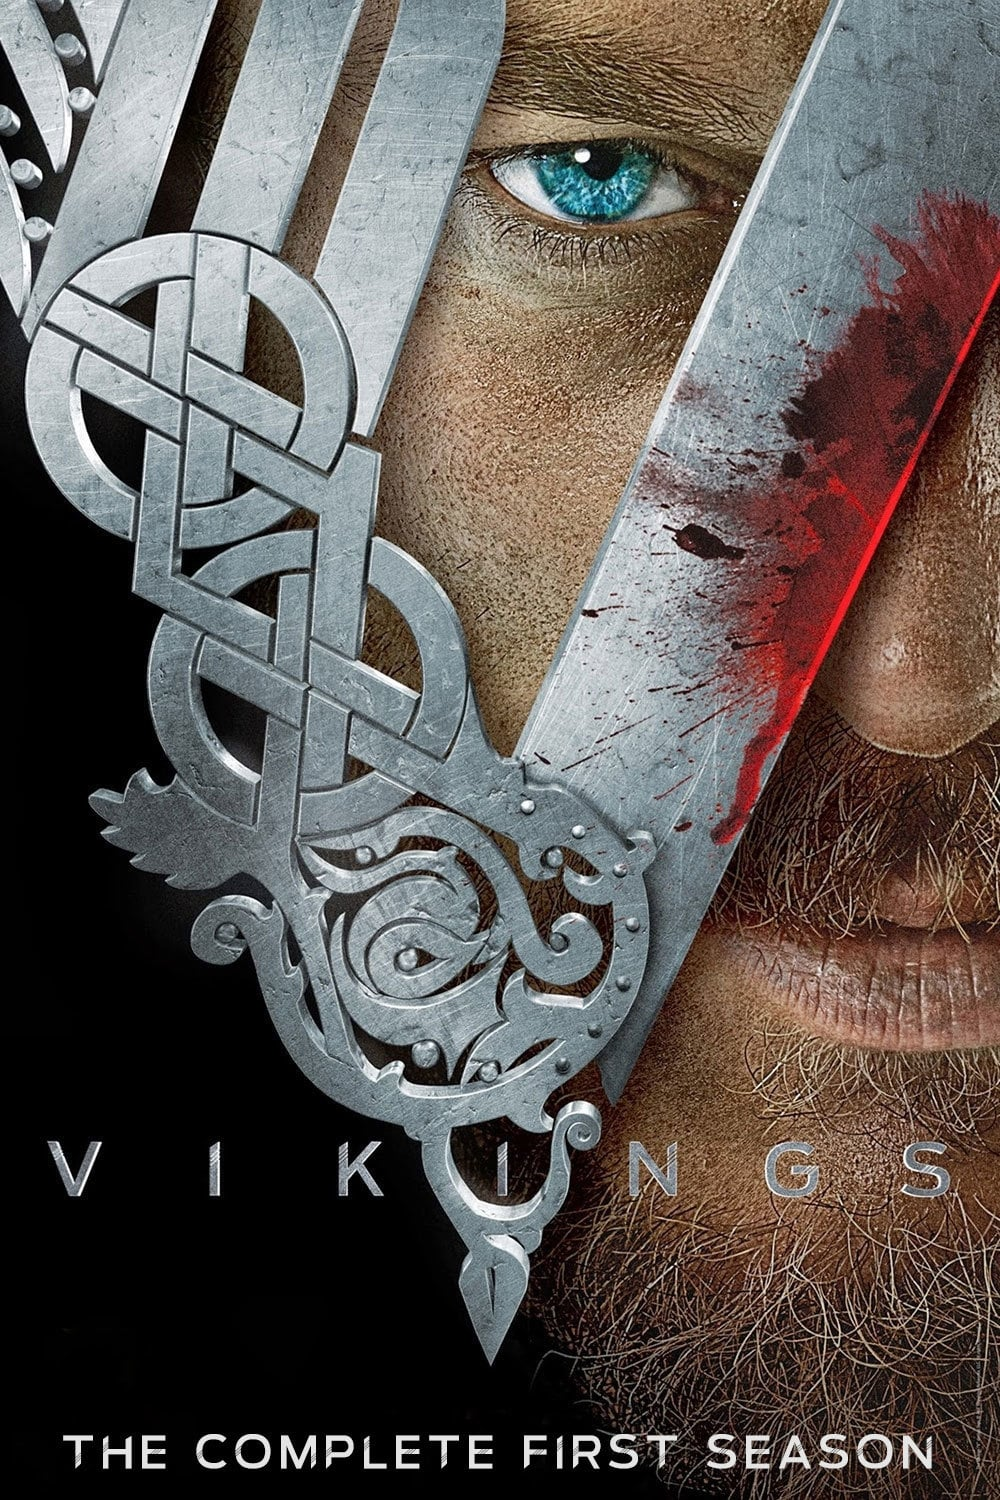 http://arkadascasohbet.com/vikings-1a-temporada-2013-bdrip-bluray-720p-dublado-torrent/